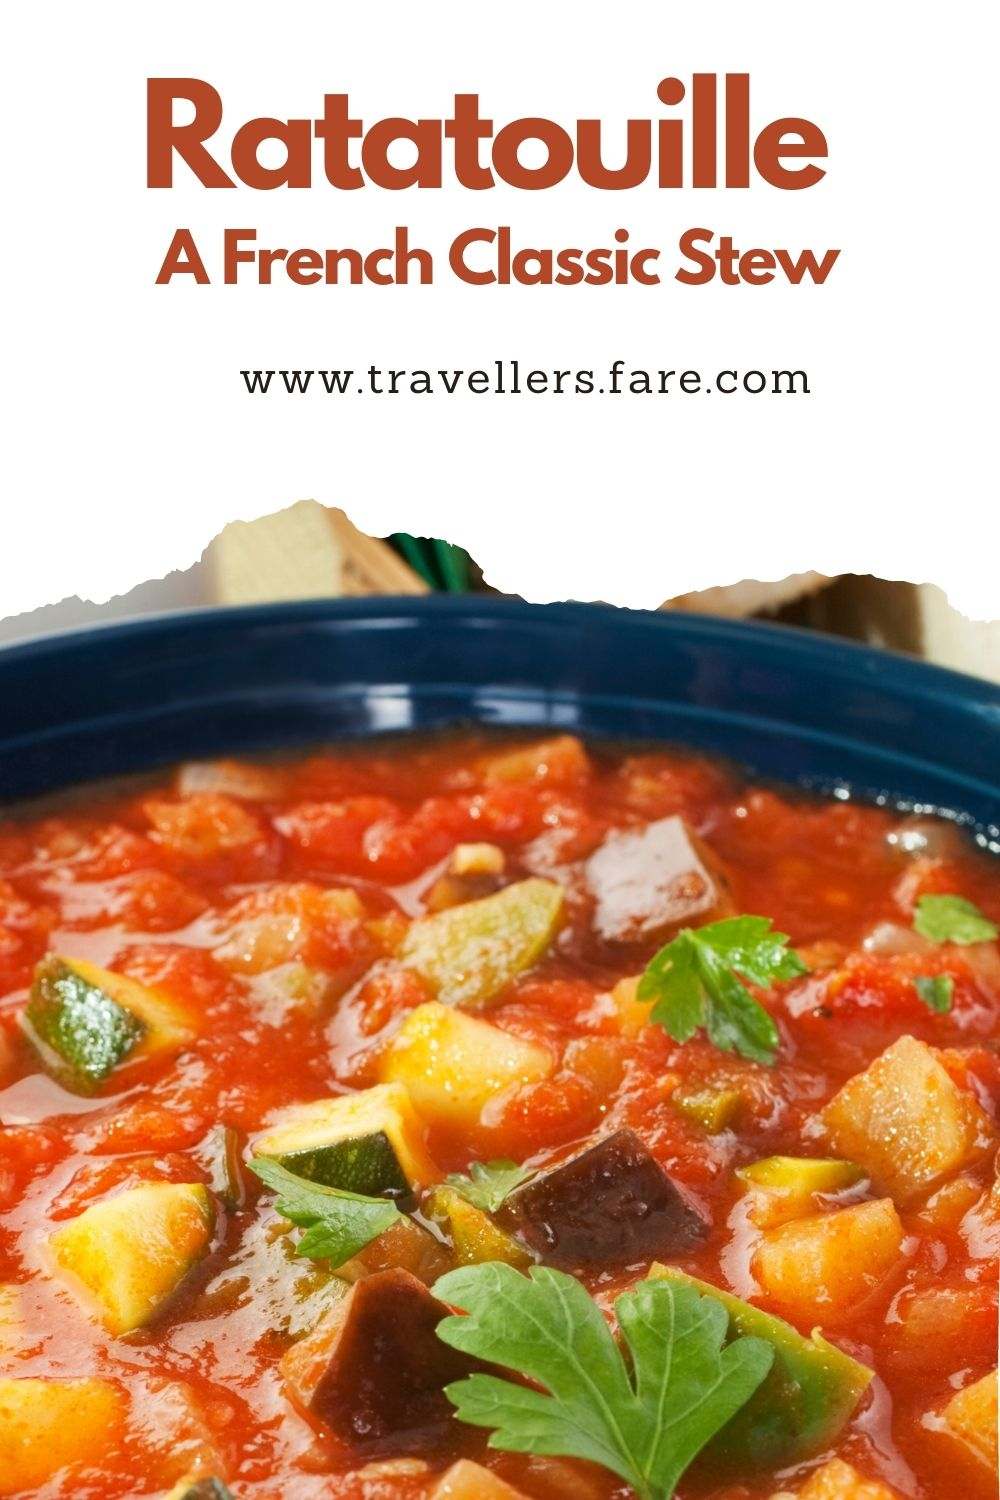 Ratatouille Is A French Classic Stew. Made From Eggplant, Peppers, Zucchini, Onion And Tomatoes.